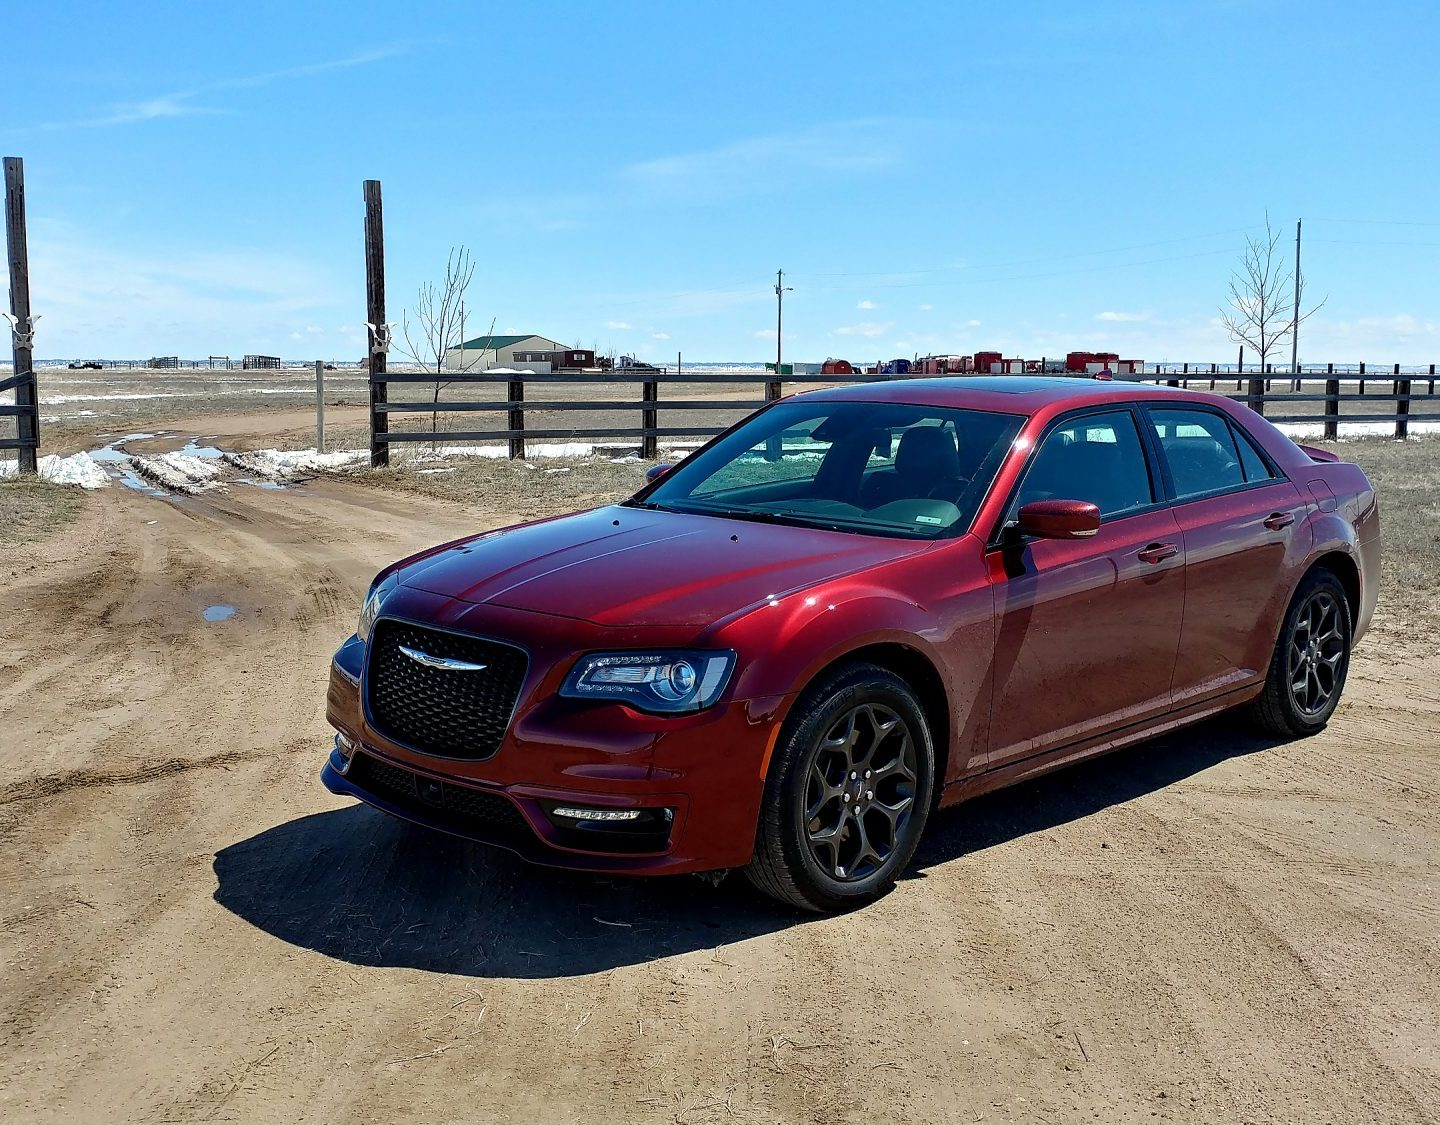 Video Review: 2019 Chrysler 300 Continues the Big American Sedan Goodness